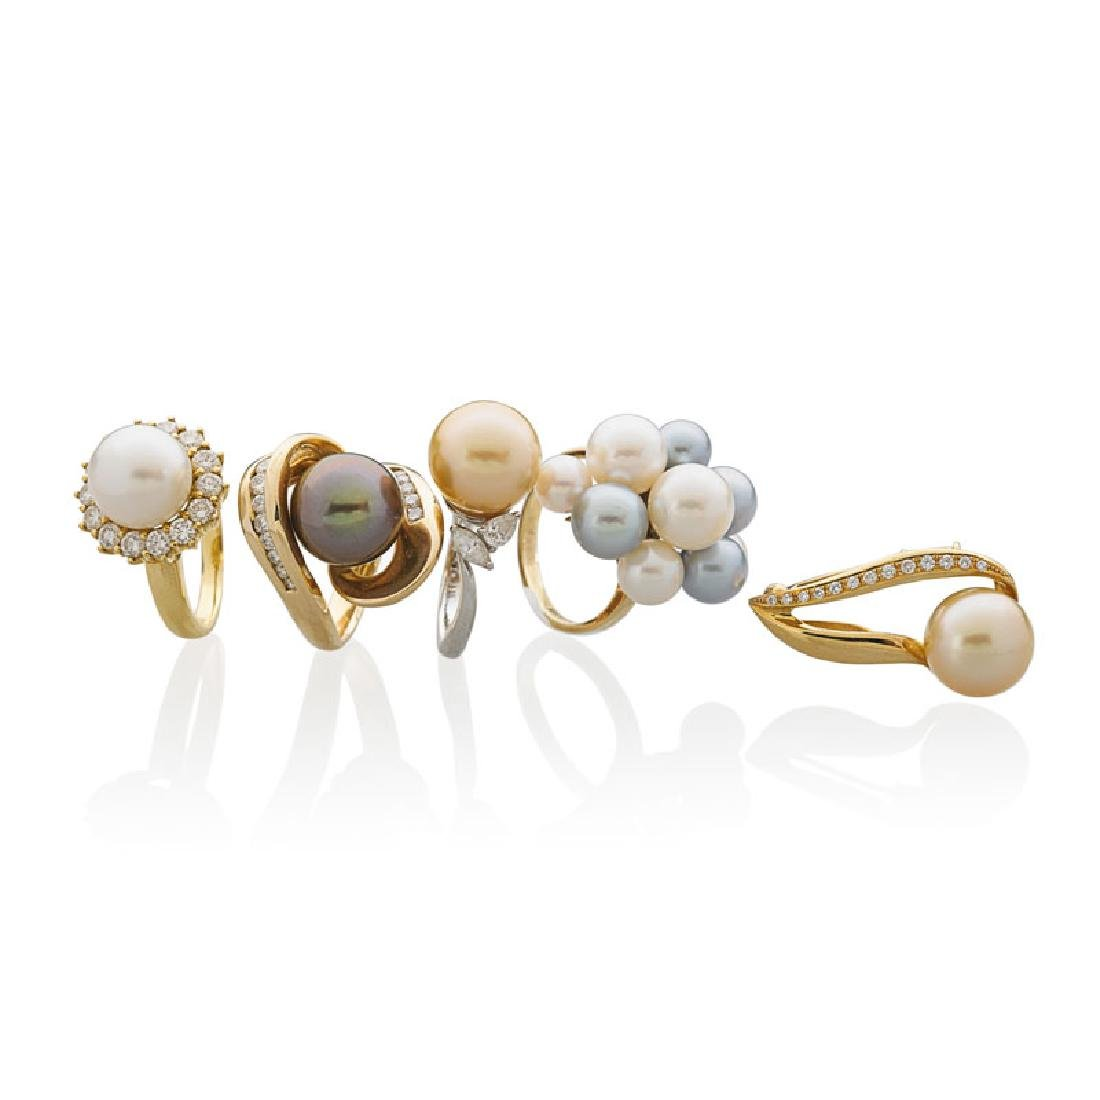 MULTI HUE COLLECTION OF PEARL & GOLD JEWELRY